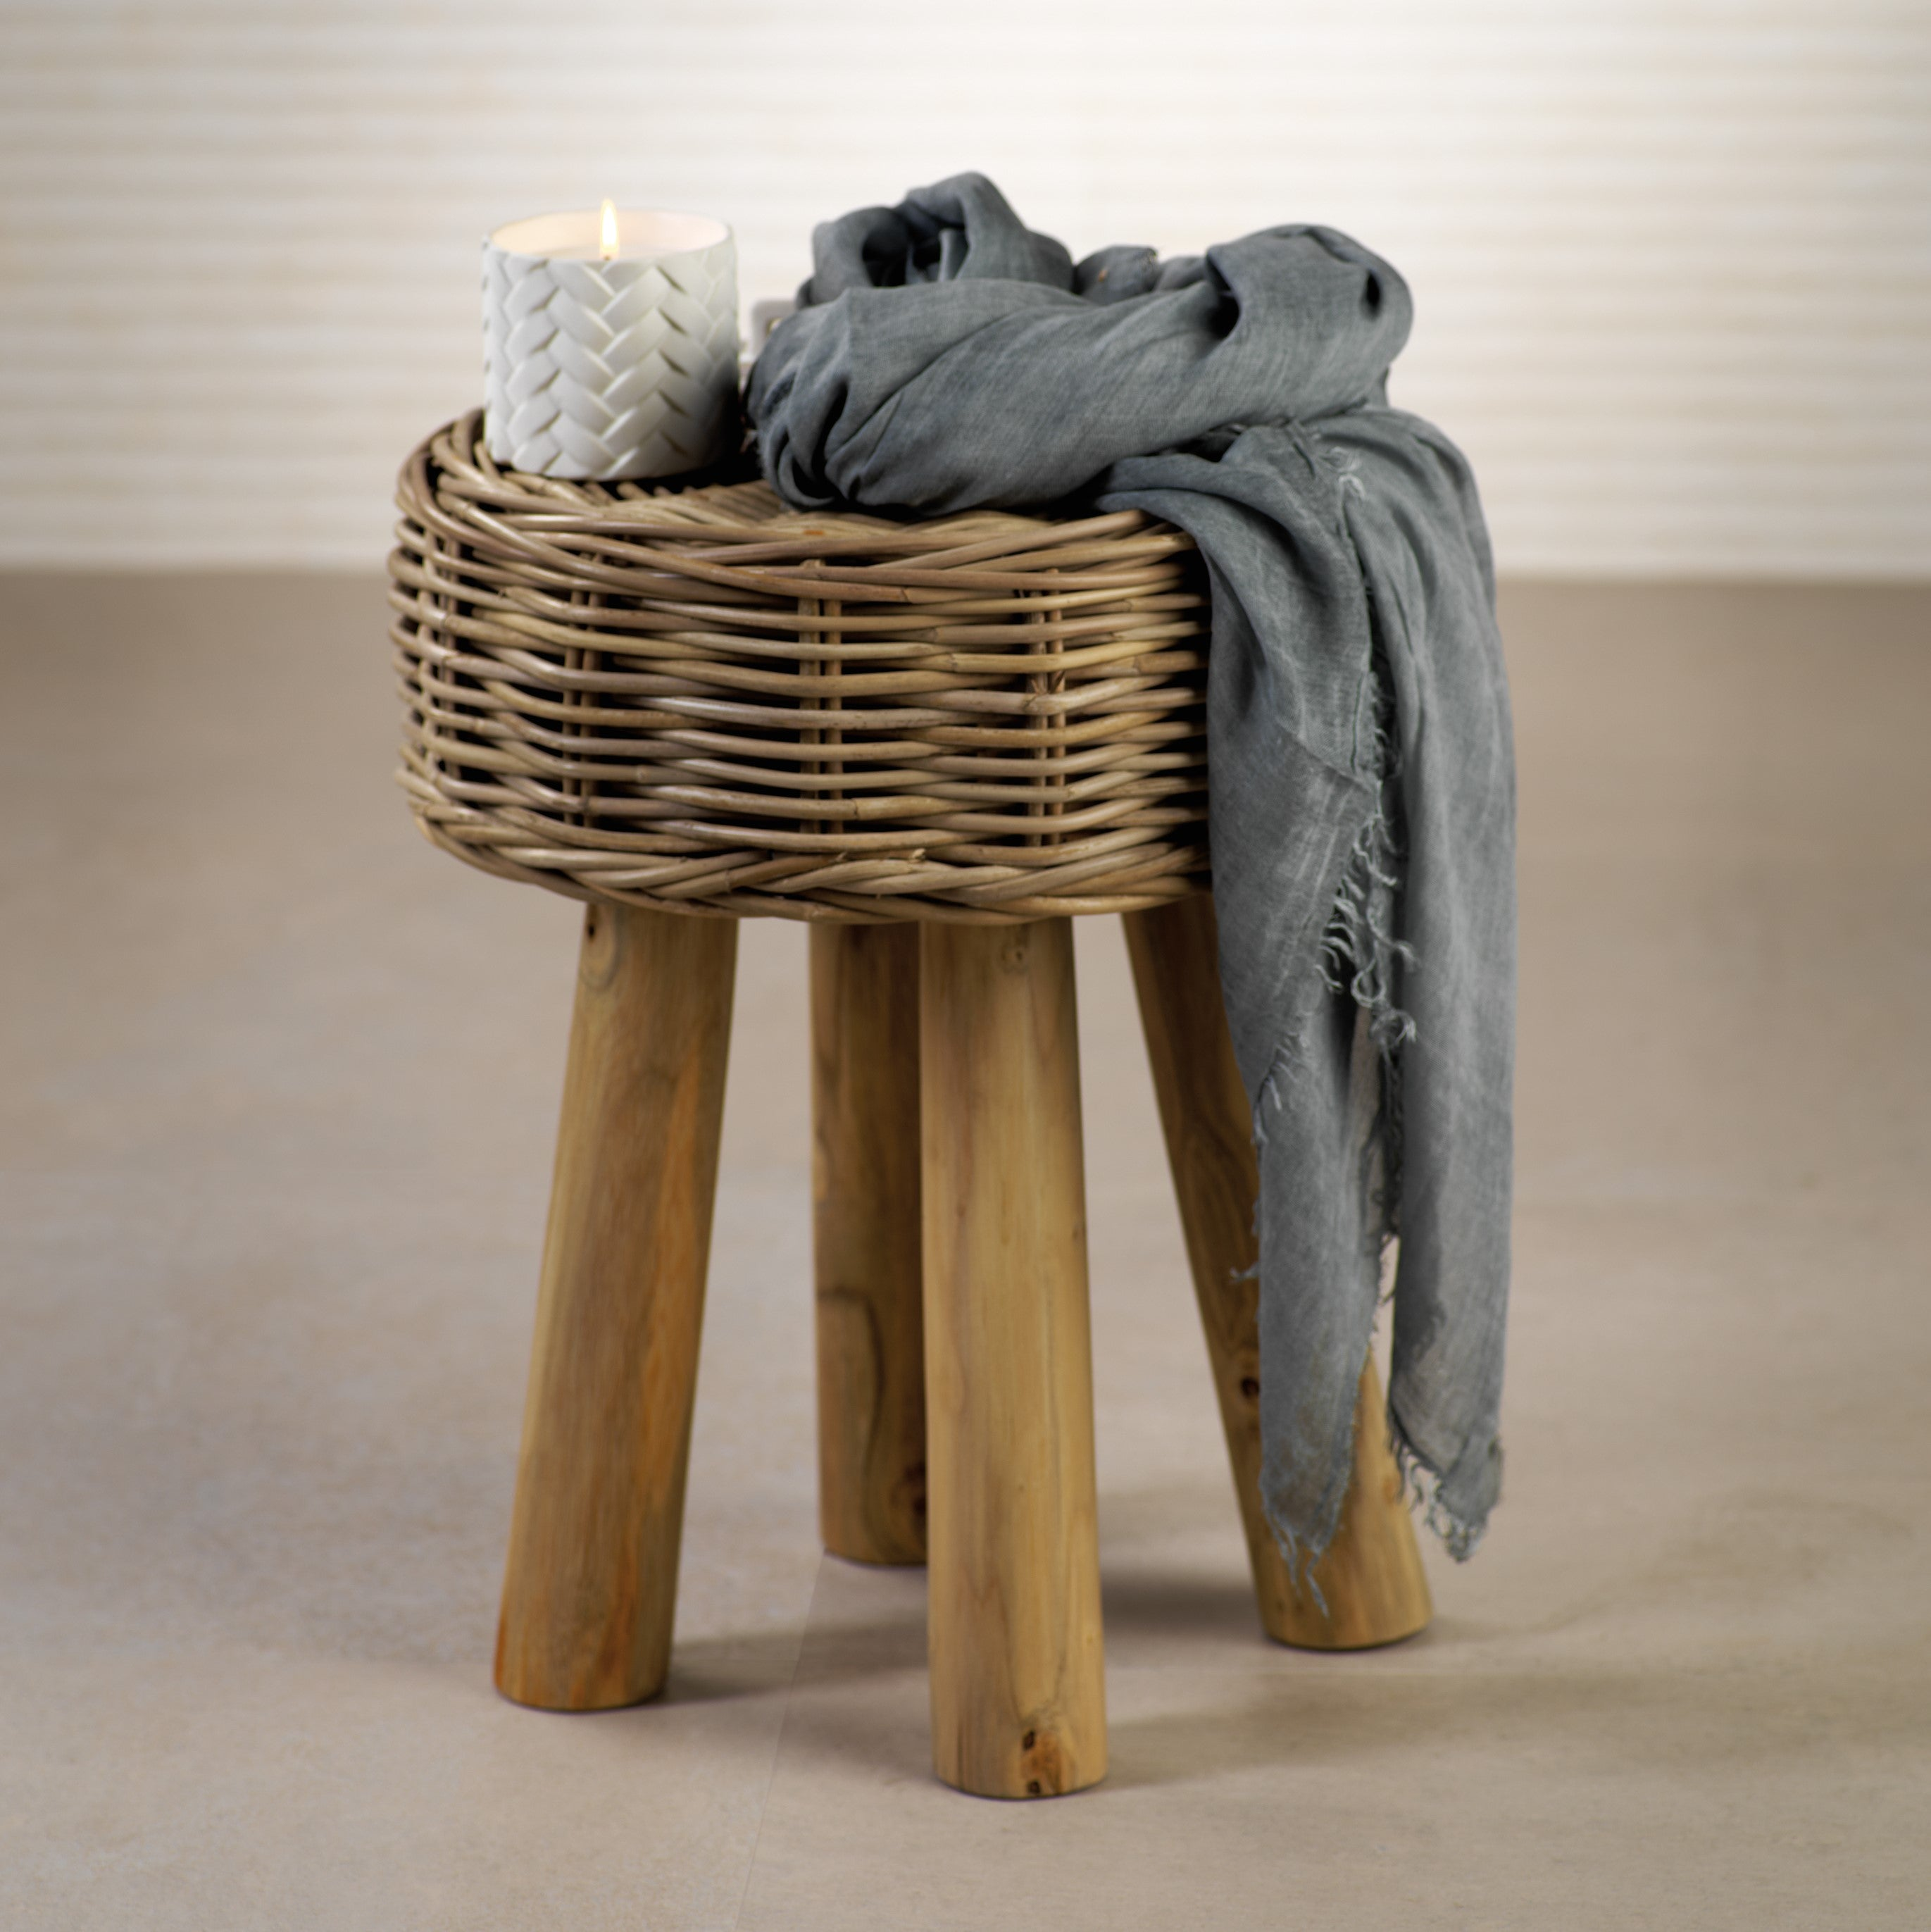 Rattan and Teakwood Stool - CARLYLE AVENUE